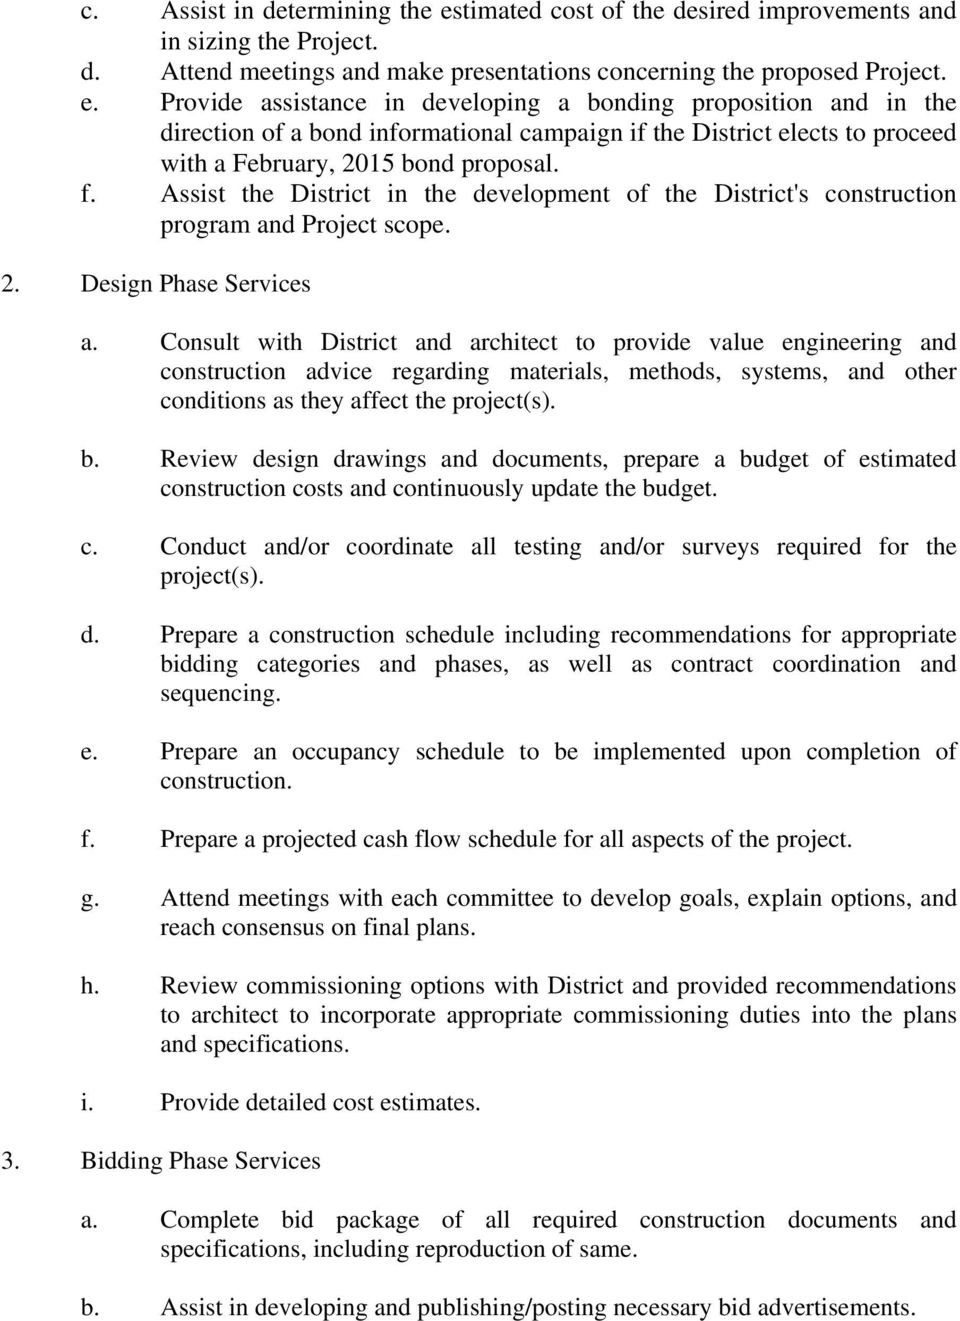 Provide assistance in developing a bonding proposition and in the direction of a bond informational campaign if the District elects to proceed with a February, 2015 bond proposal. f.